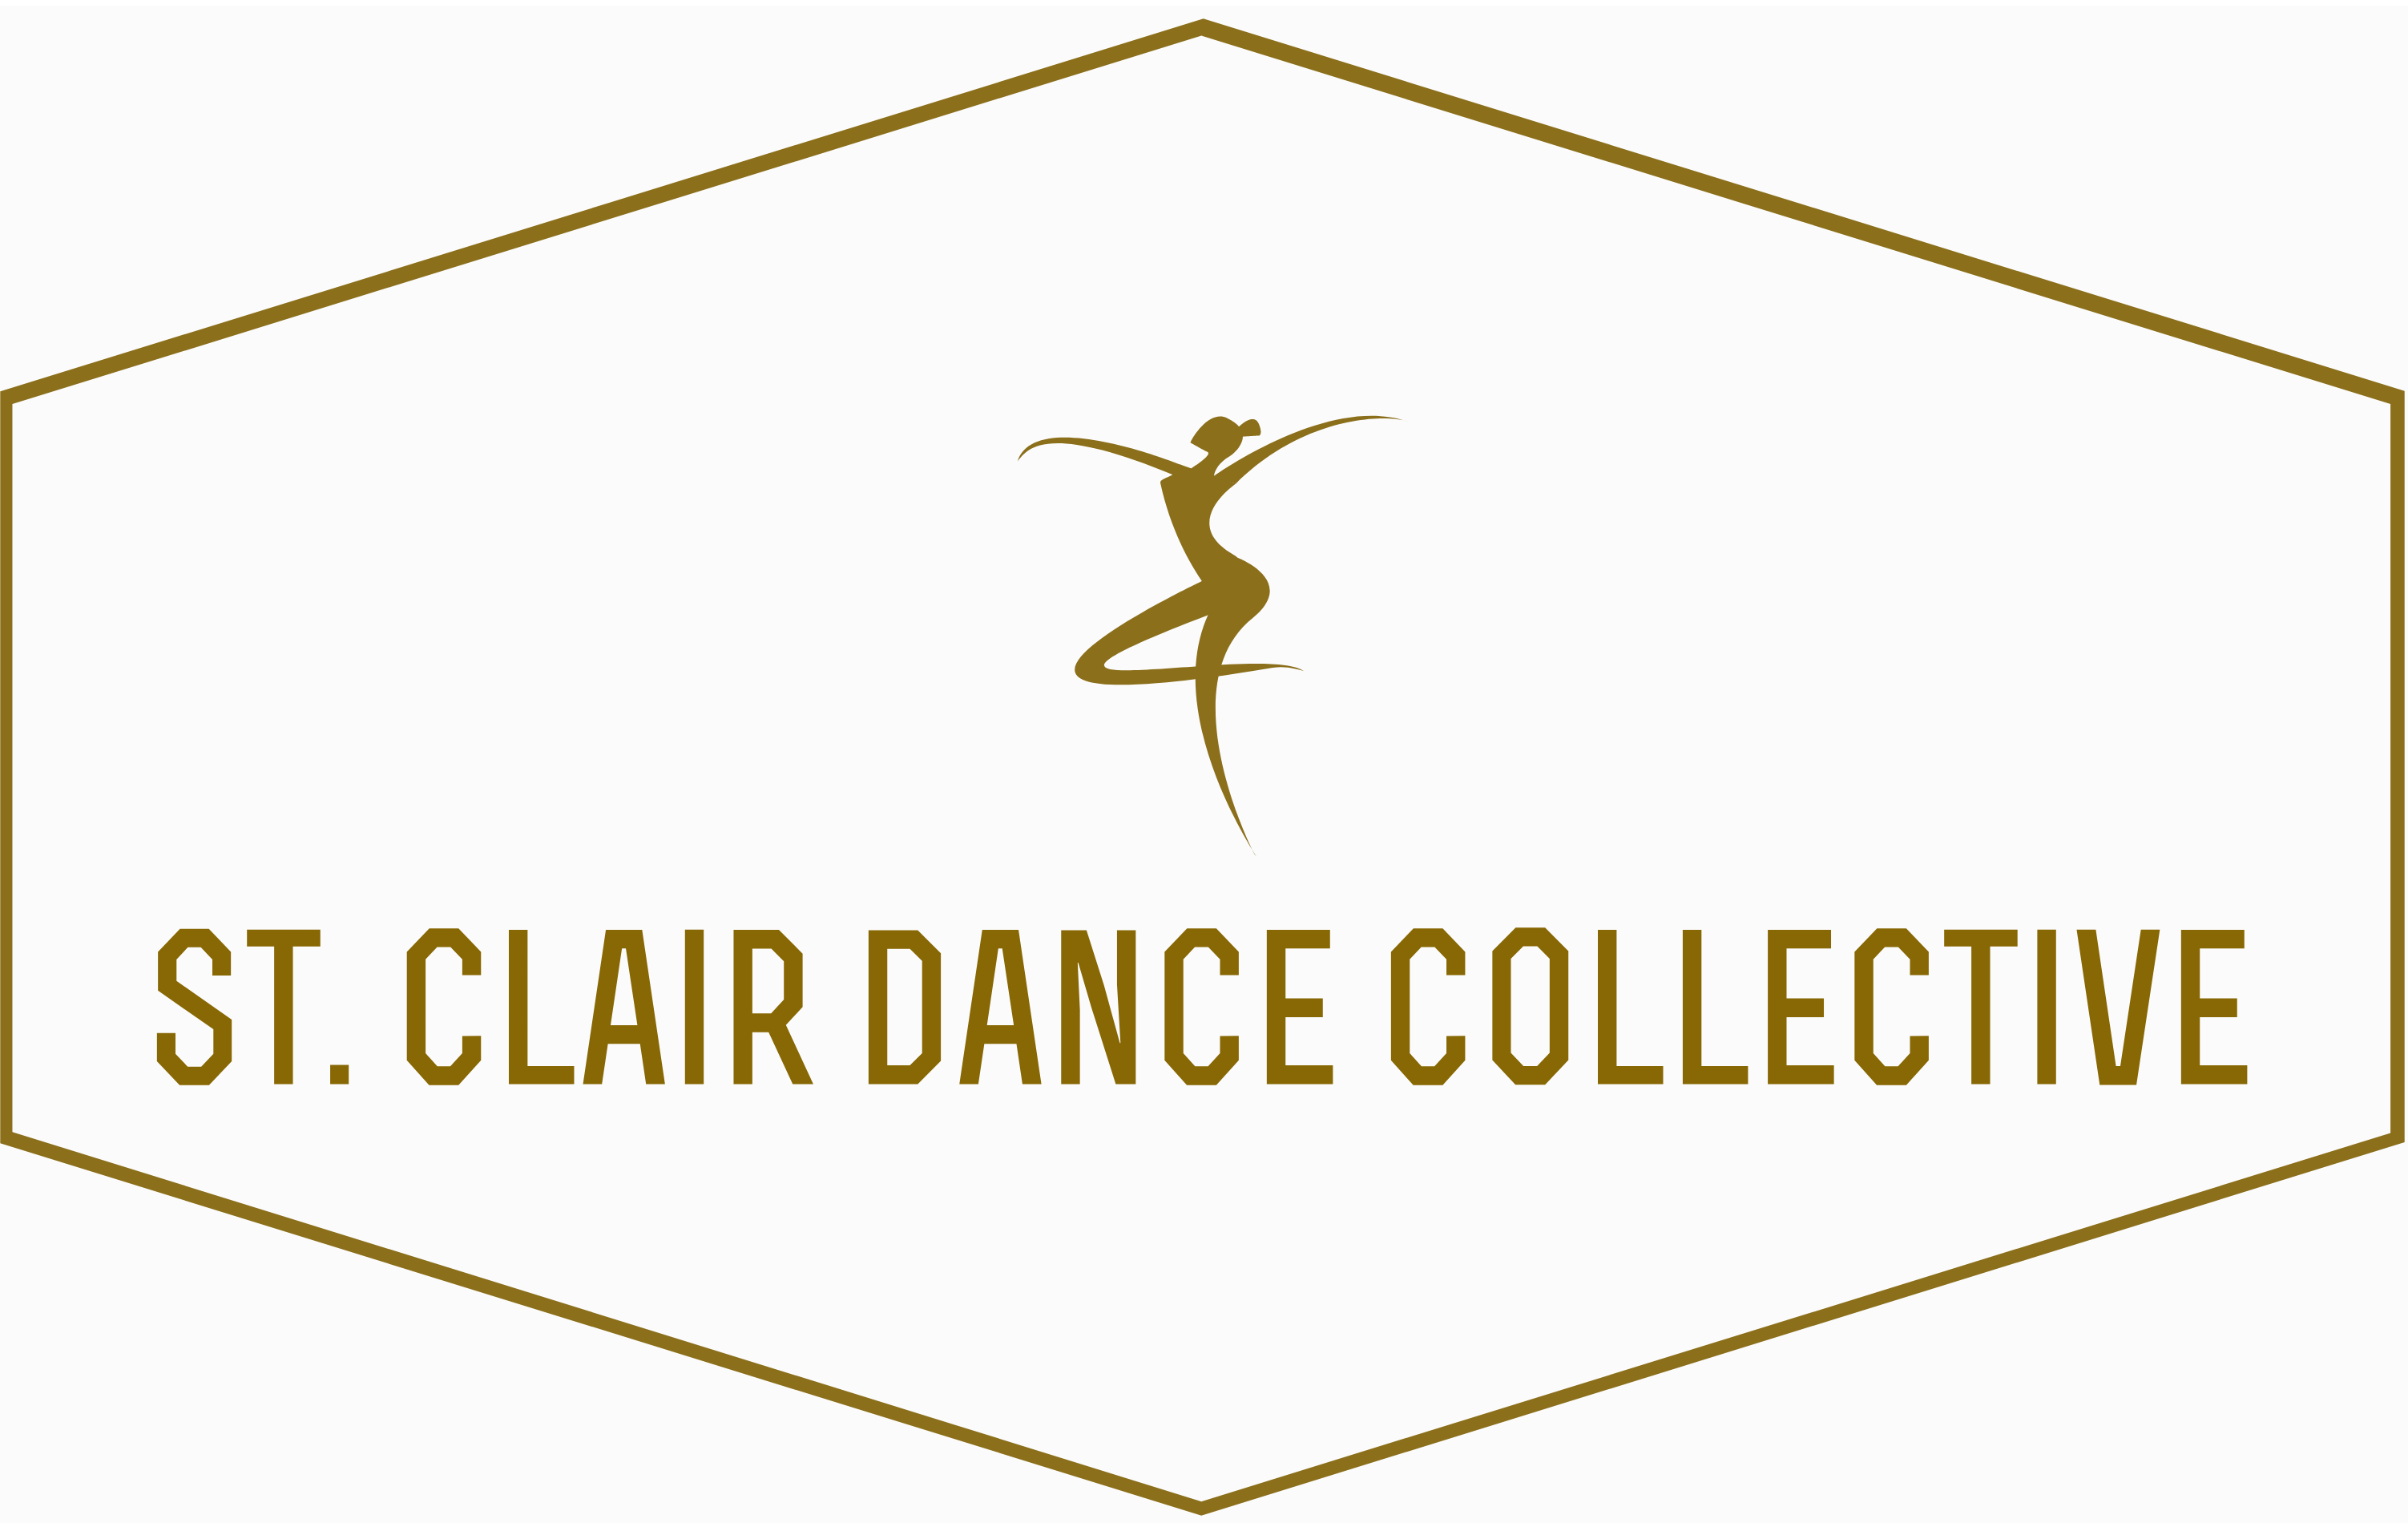 St. Clair Dance Collective Logo